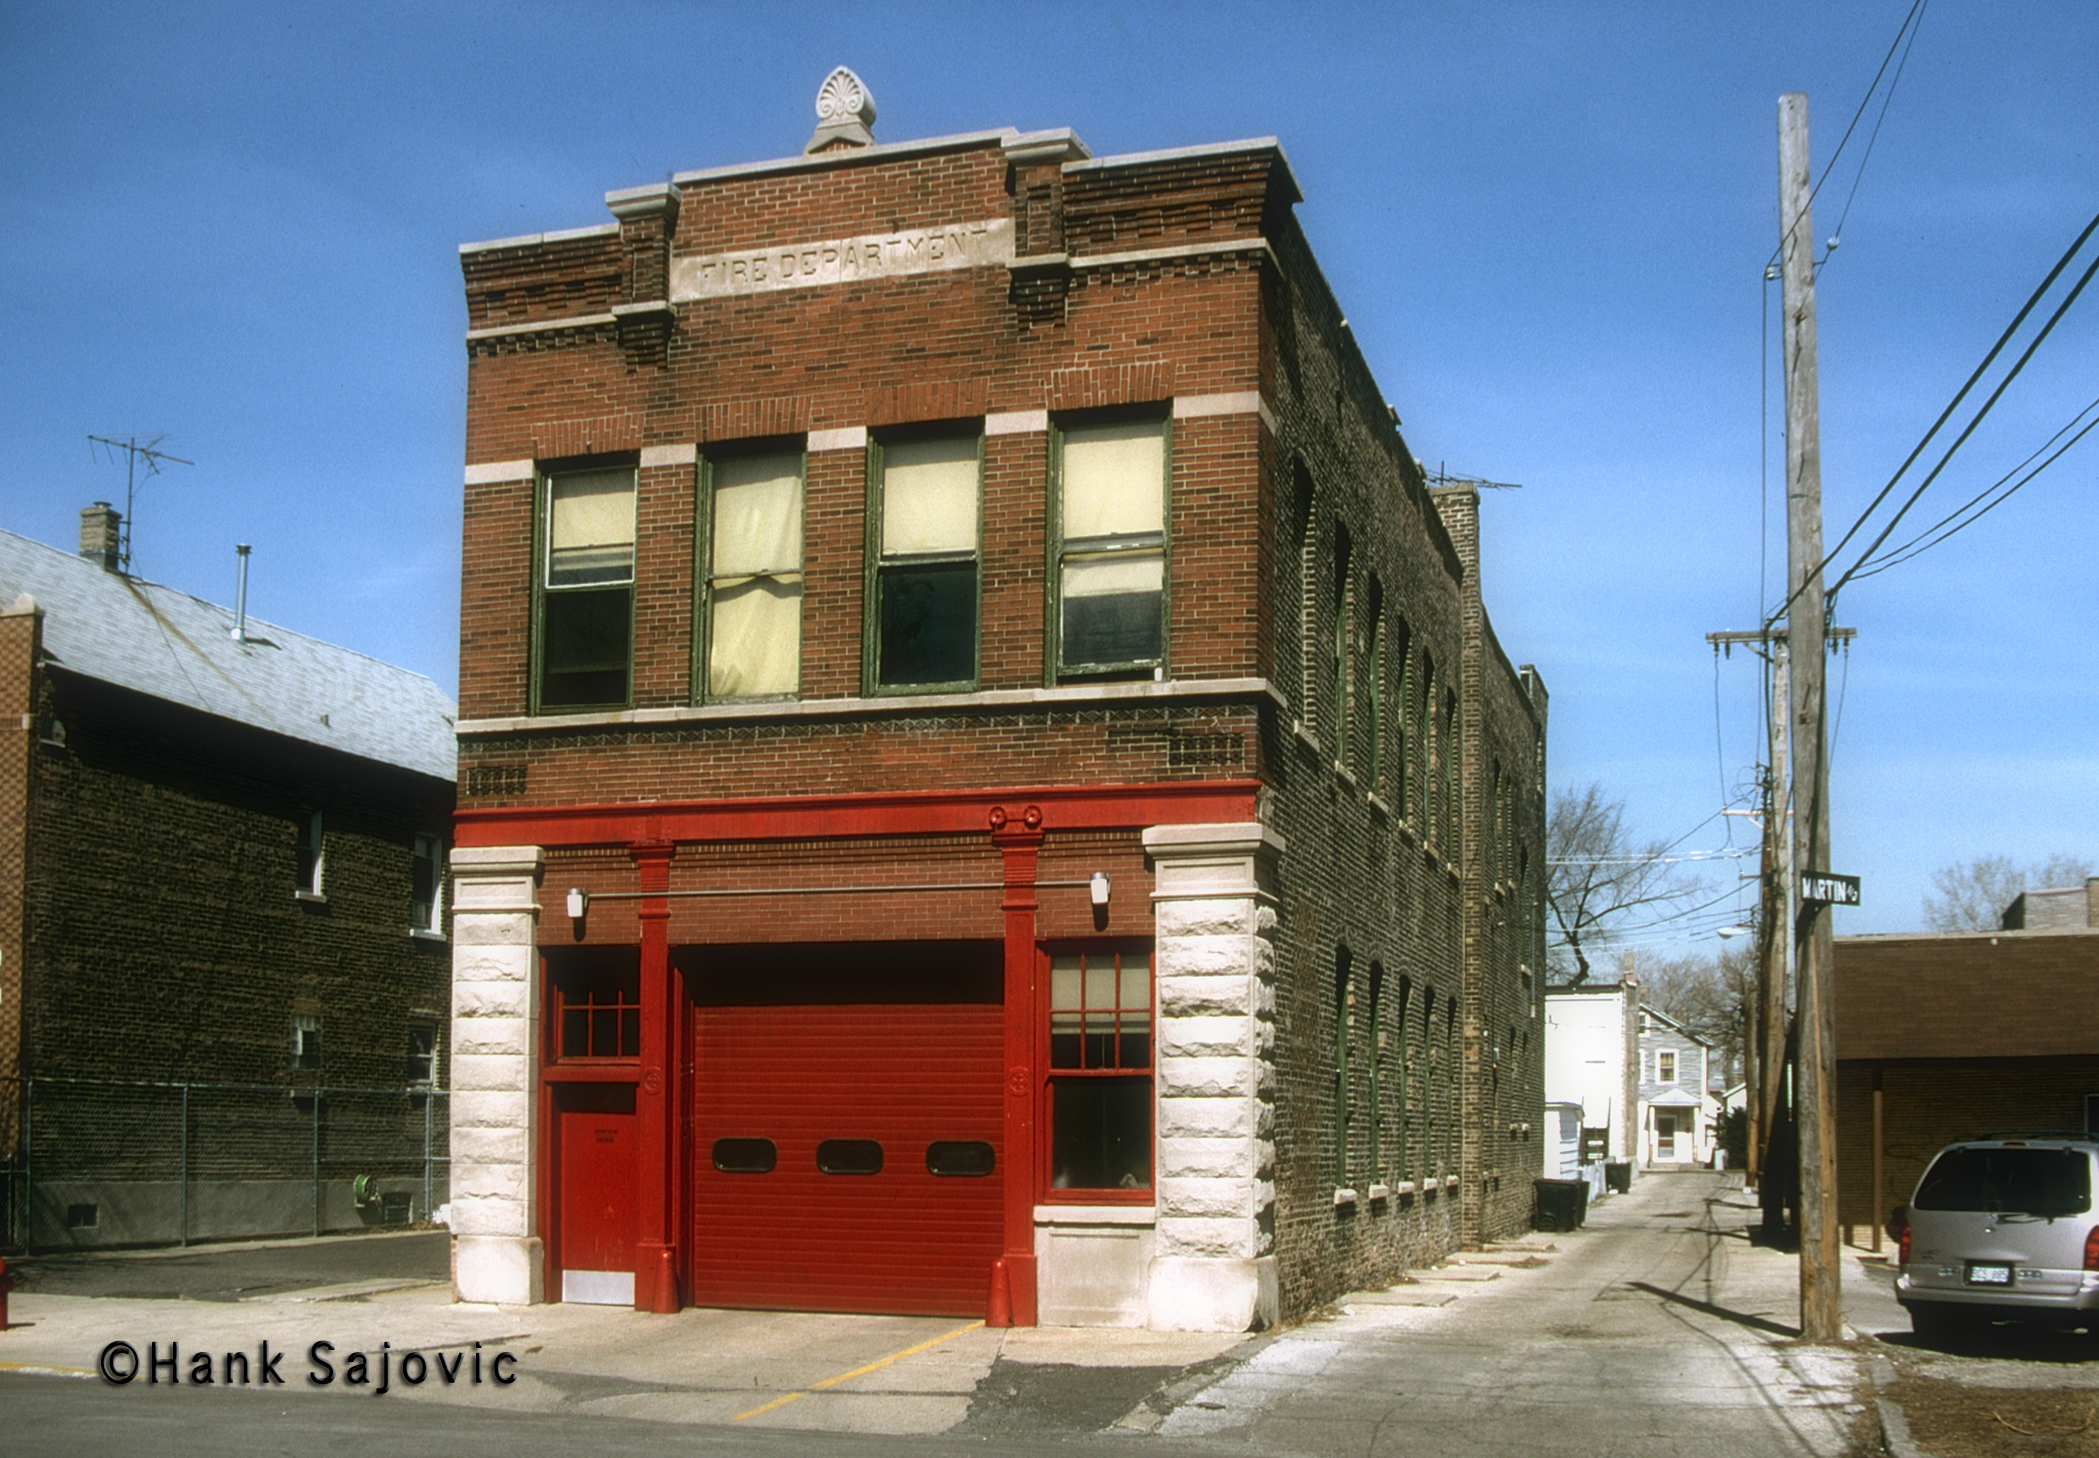 Chicago Fire Department Engine 39's house